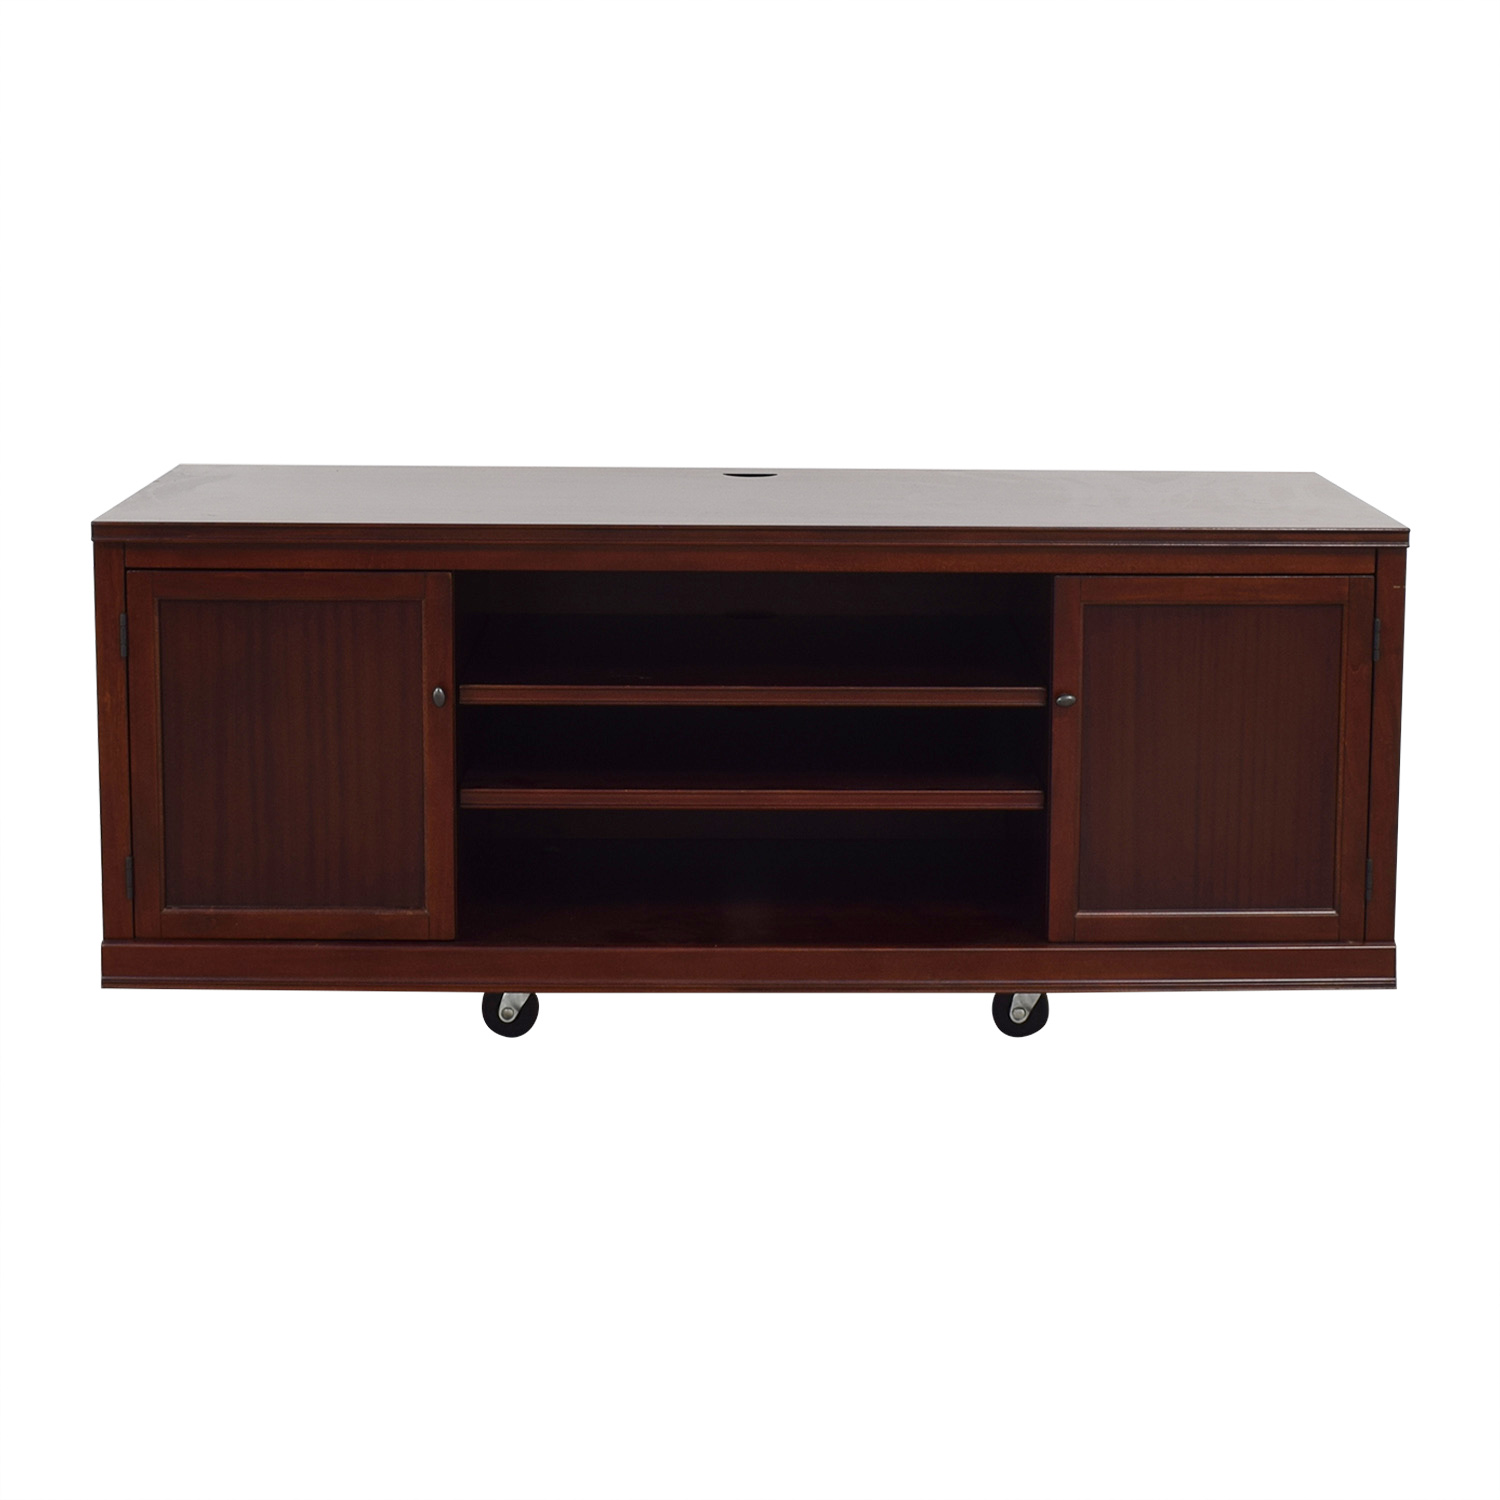 Pottery Barn Pottery Barn Logan Wood TV Stand price